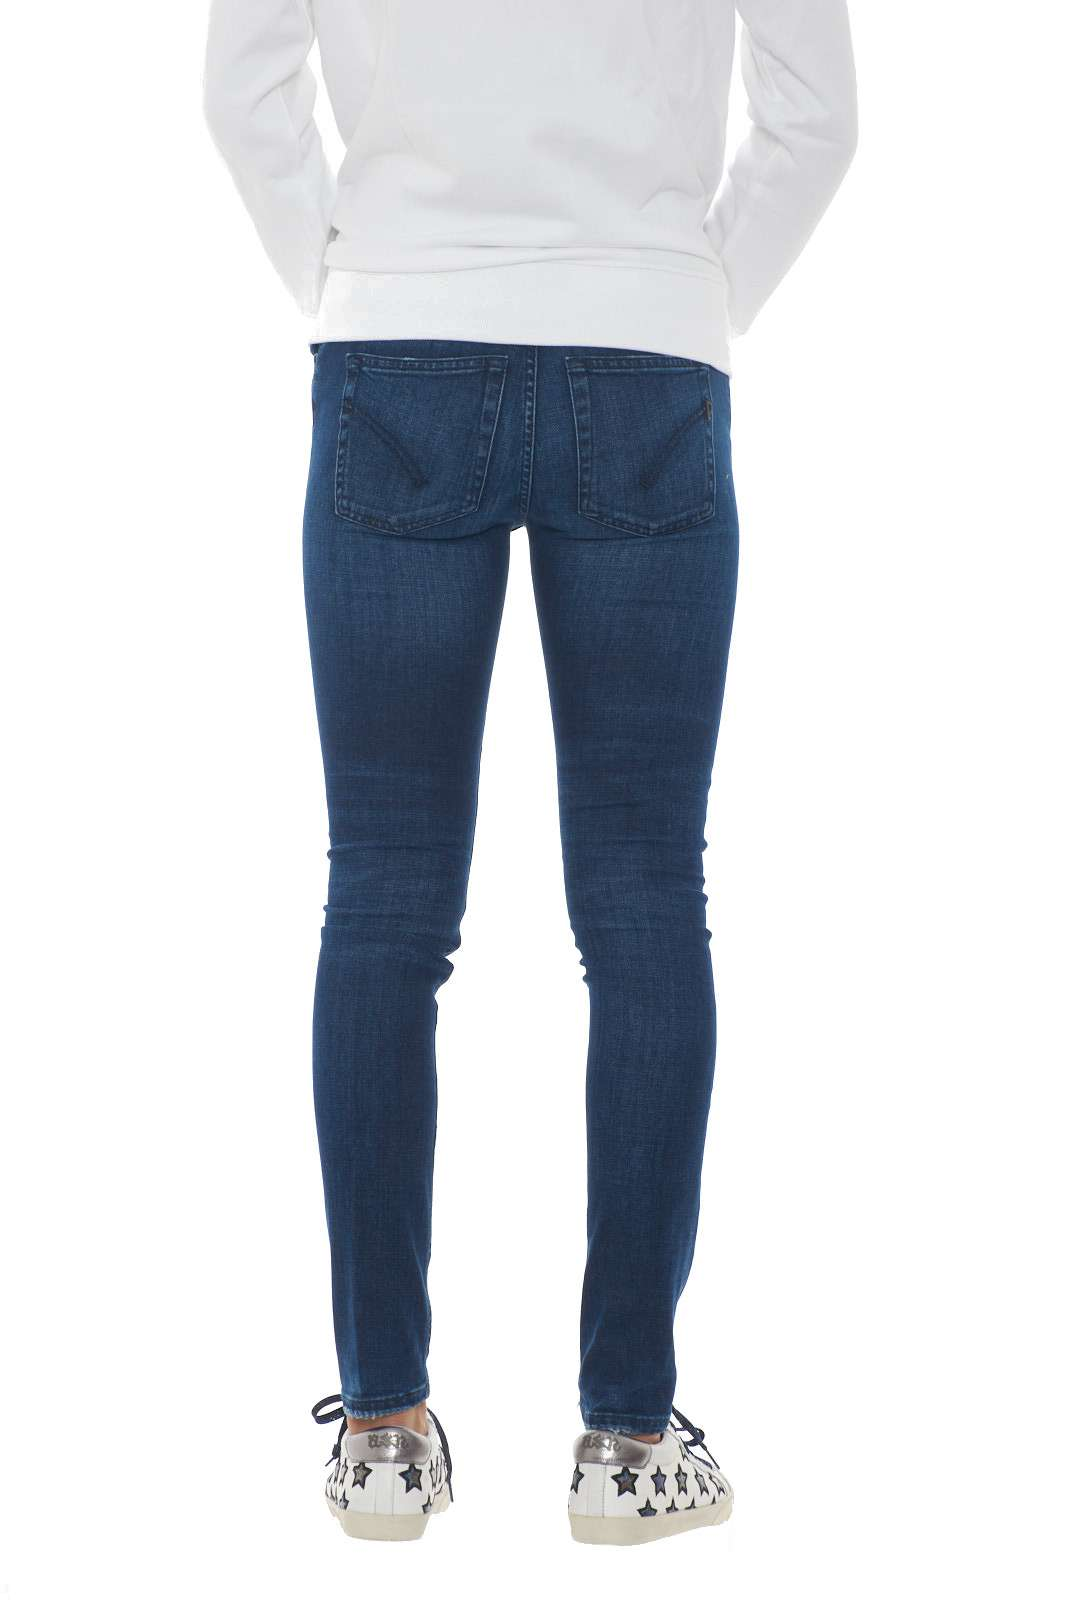 https://www.parmax.com/media/catalog/product/a/i/AI-outlet_parmax-denim-donna-Dondup-DP450%20DS0265D-C.jpg